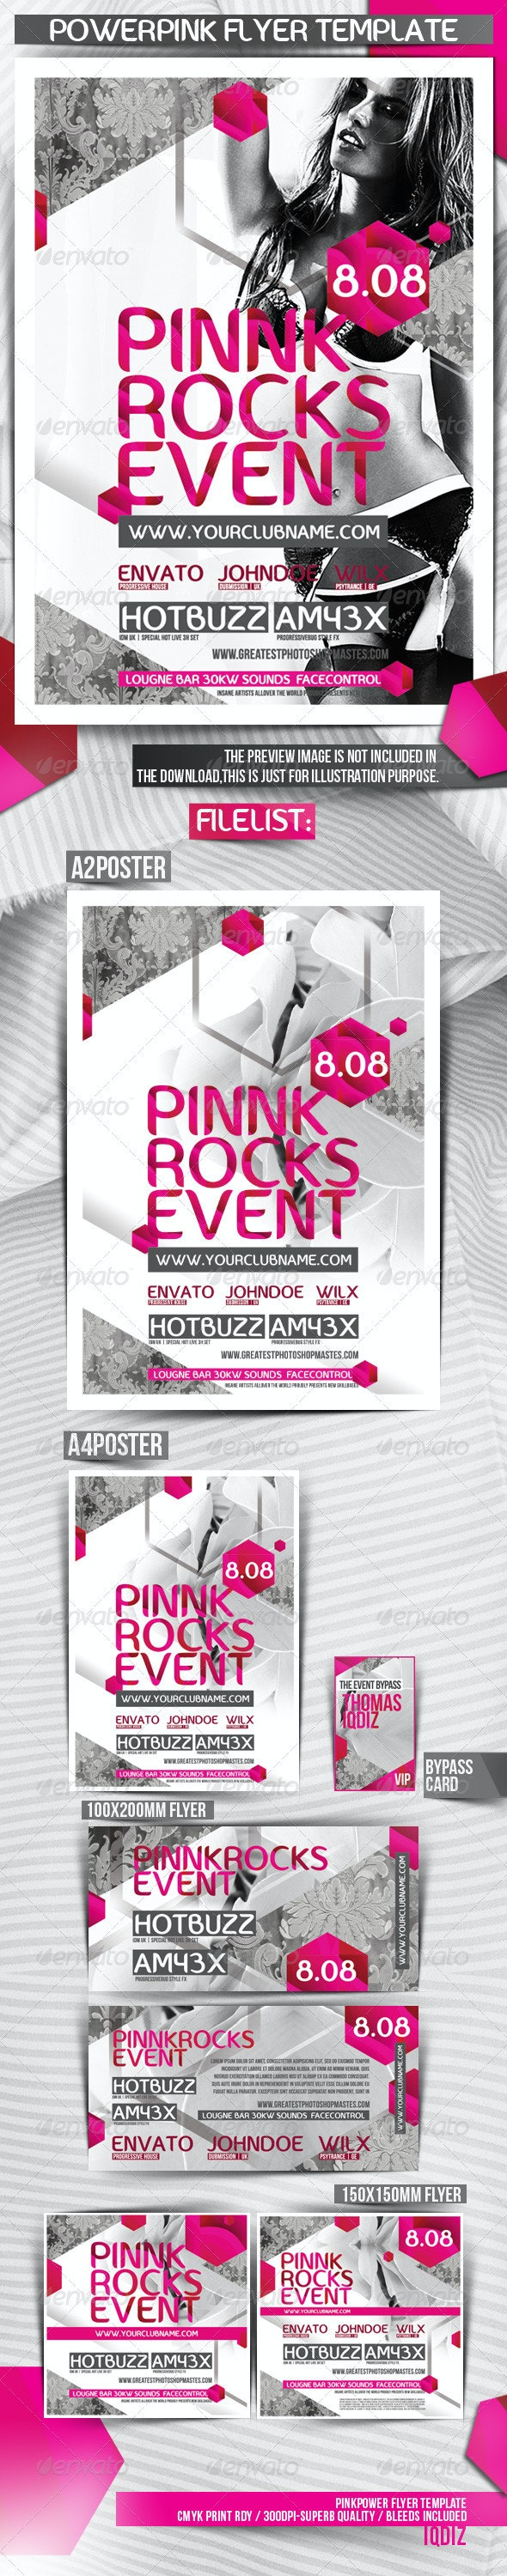 Powerpink Party Flyer Template - Clubs & Parties Events